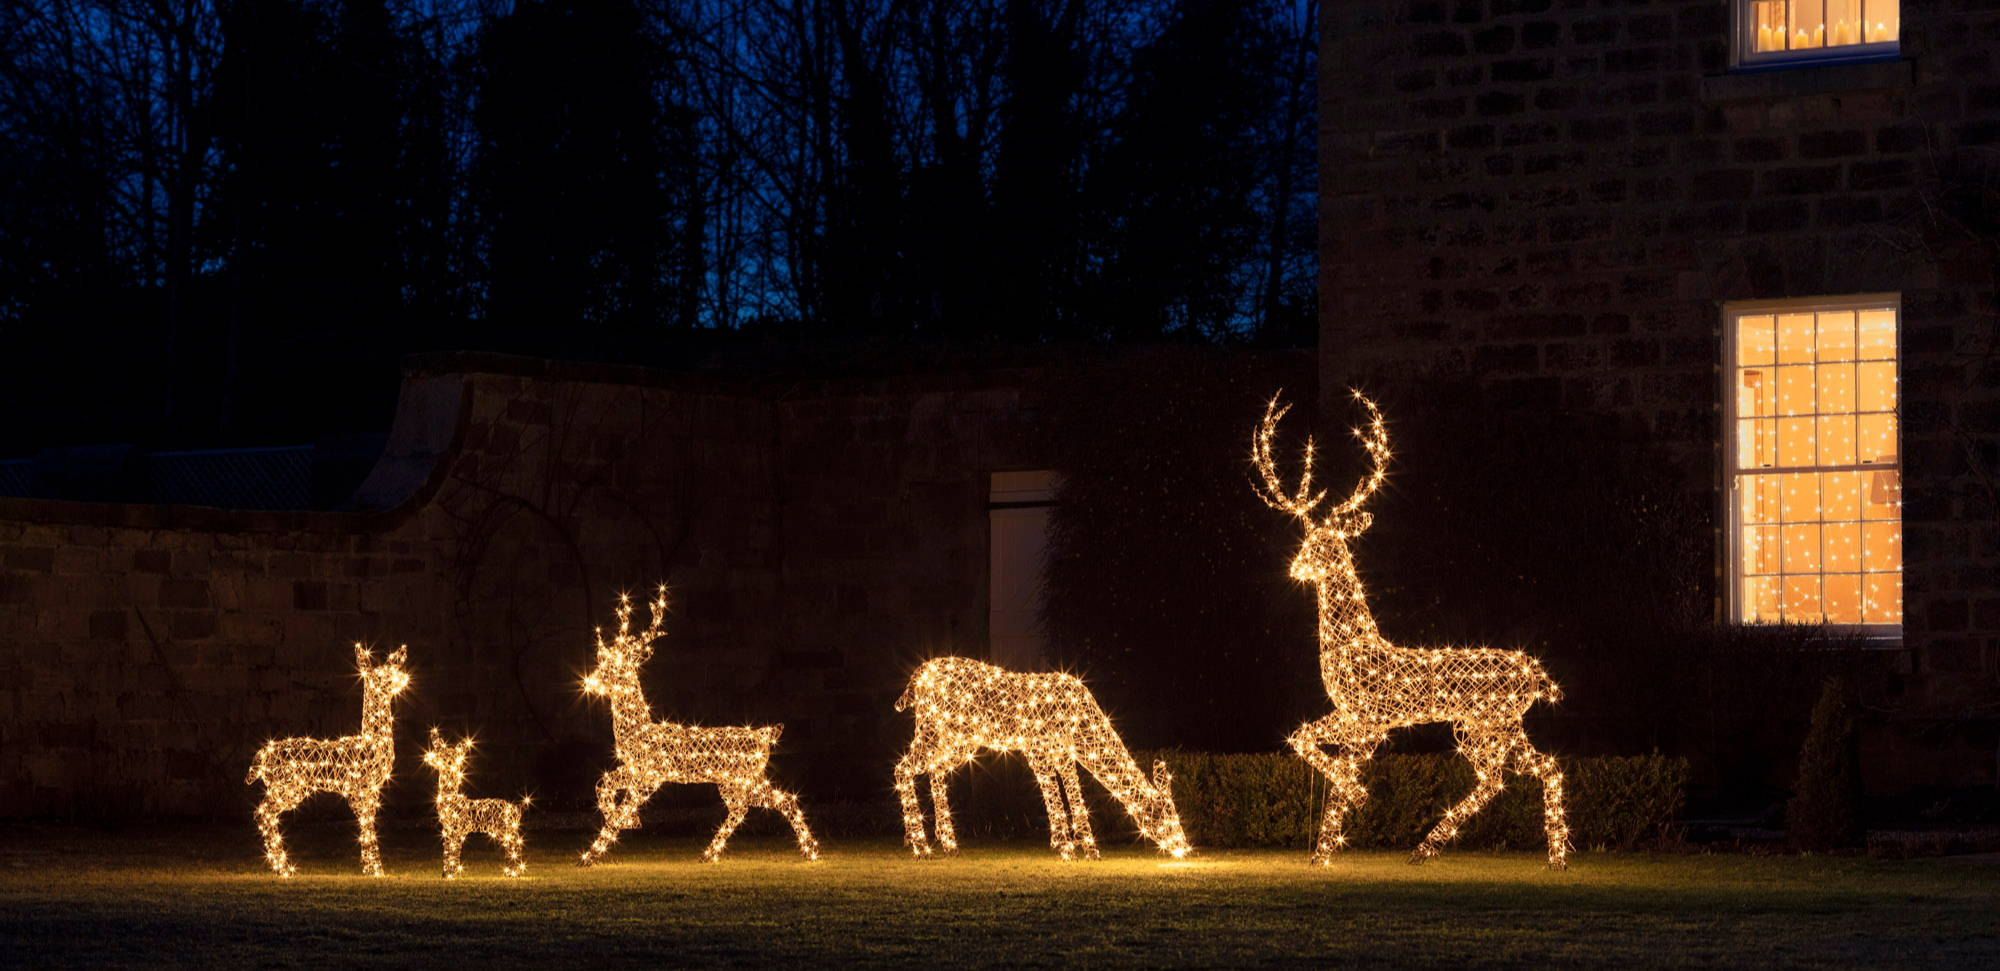 Light up reindeer family standing outdoors introducing sparkle to a Christmas setting